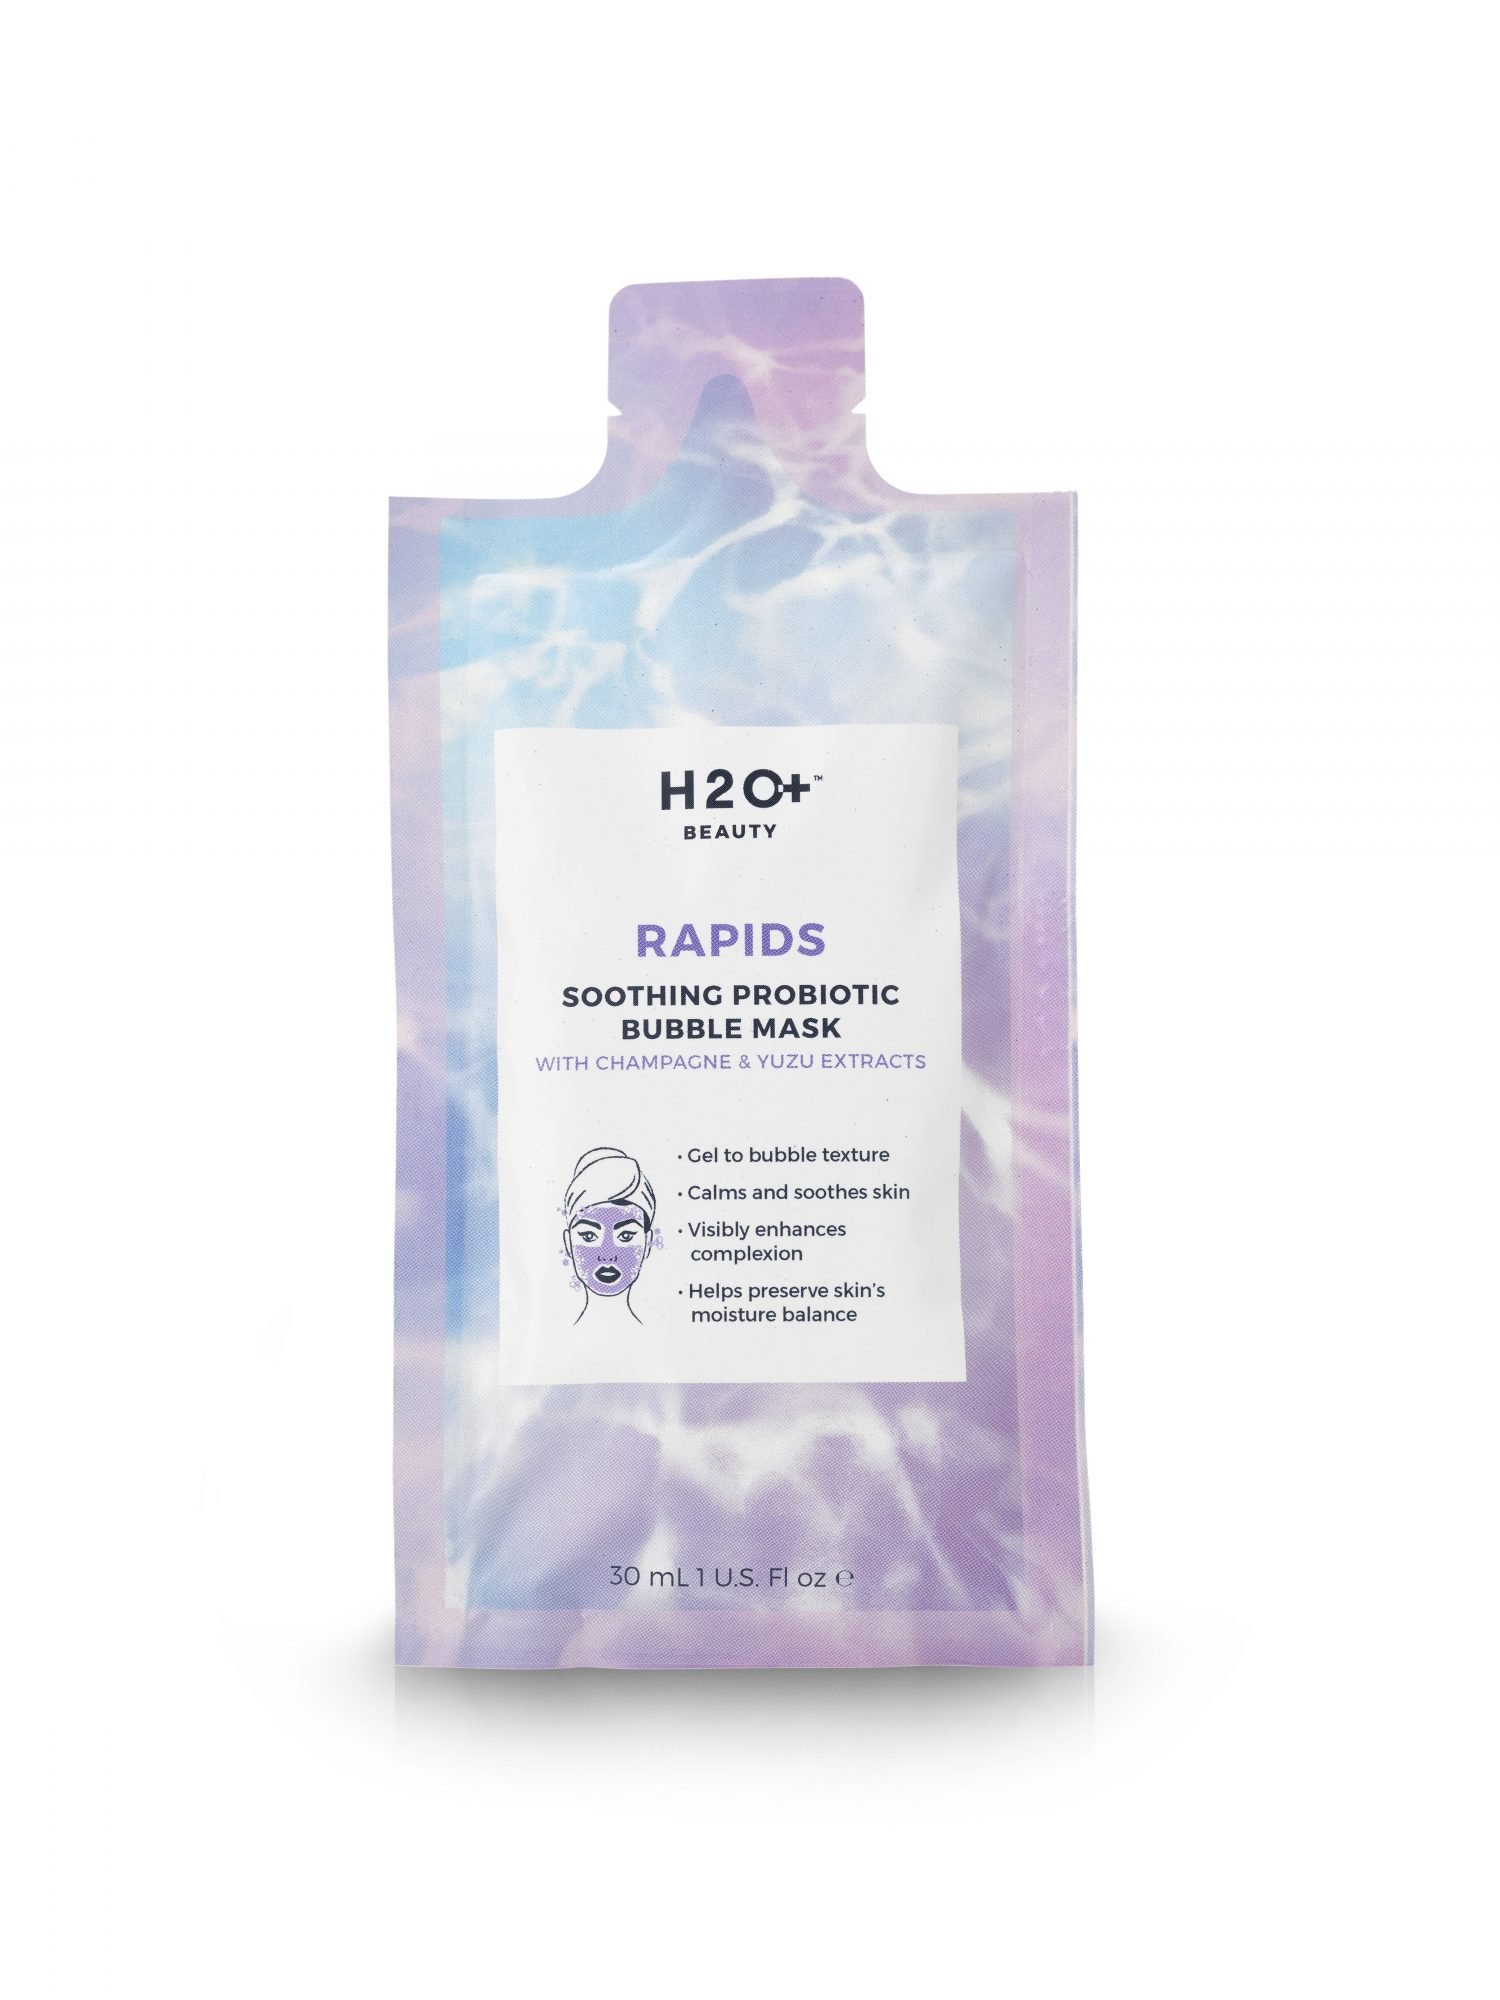 H2O+ Rapid Soothing Probiotic Bubble Mask